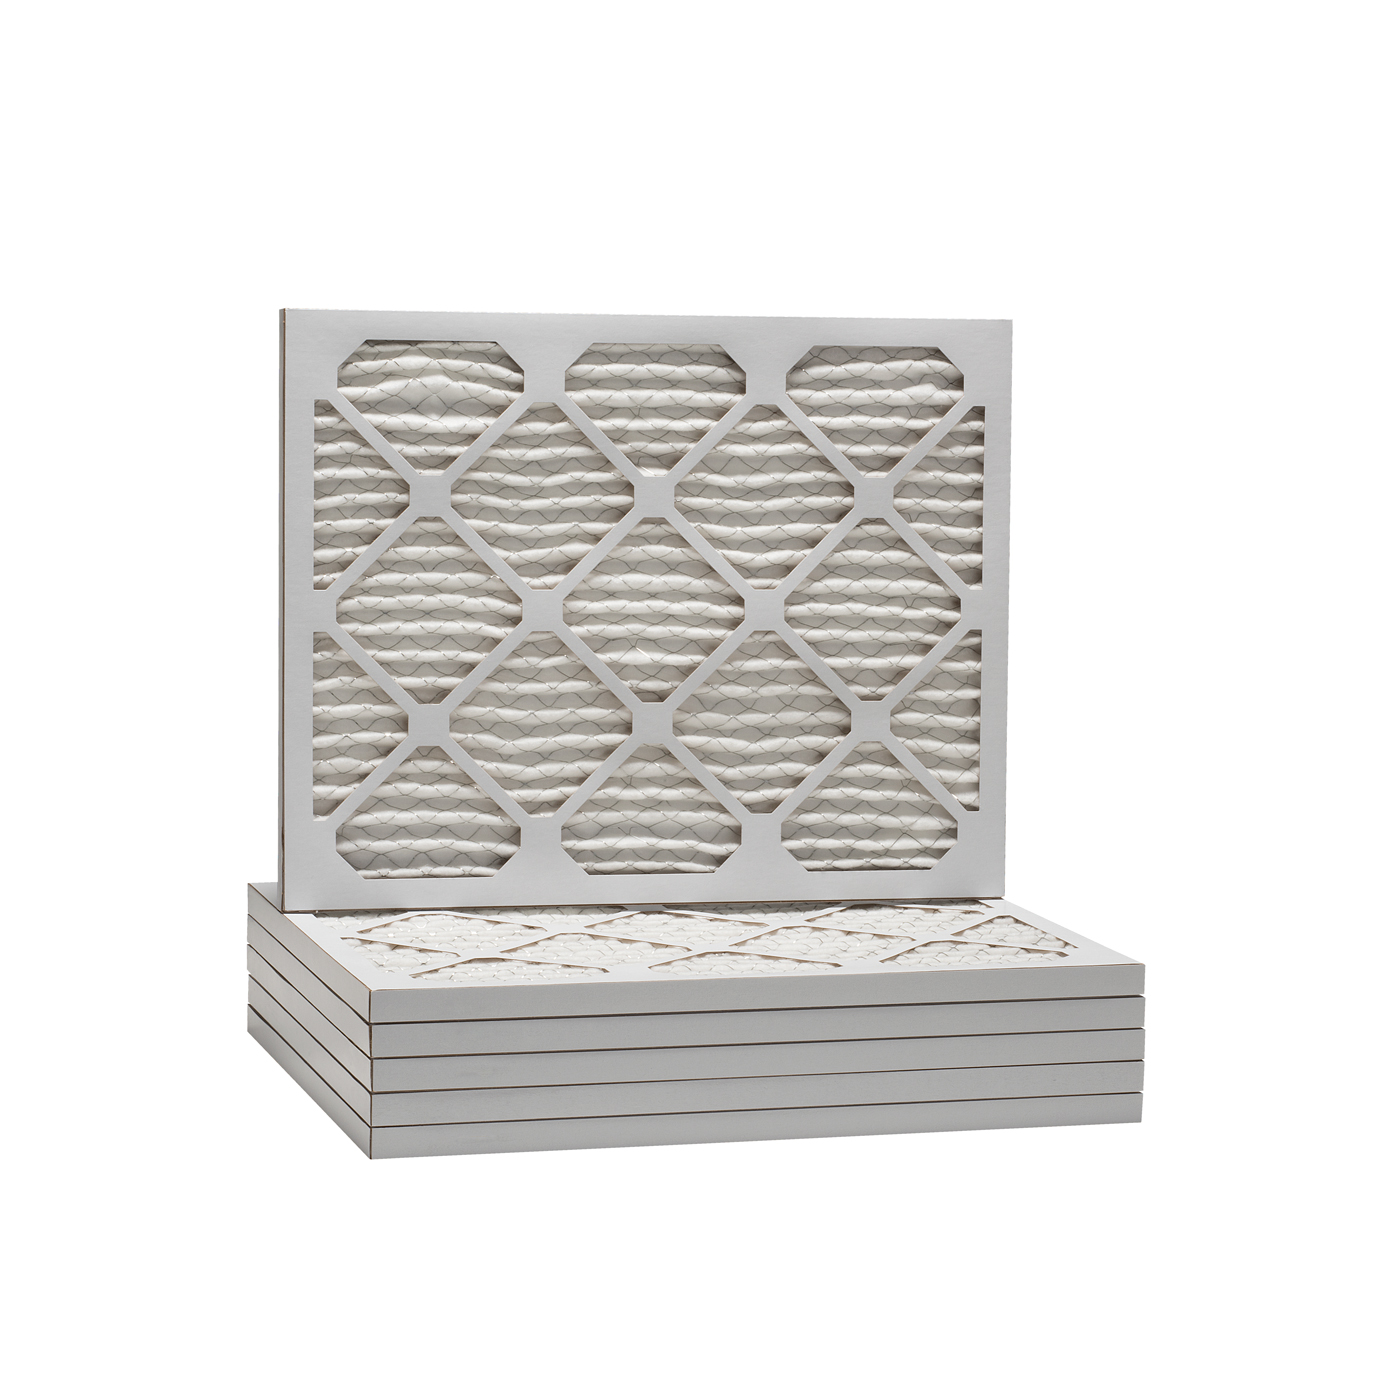 20x21 1/2x1 Merv 13 Universal Air Filter By Tier1 (6-Pack) TIER1_P25S_612021H_6_PACK